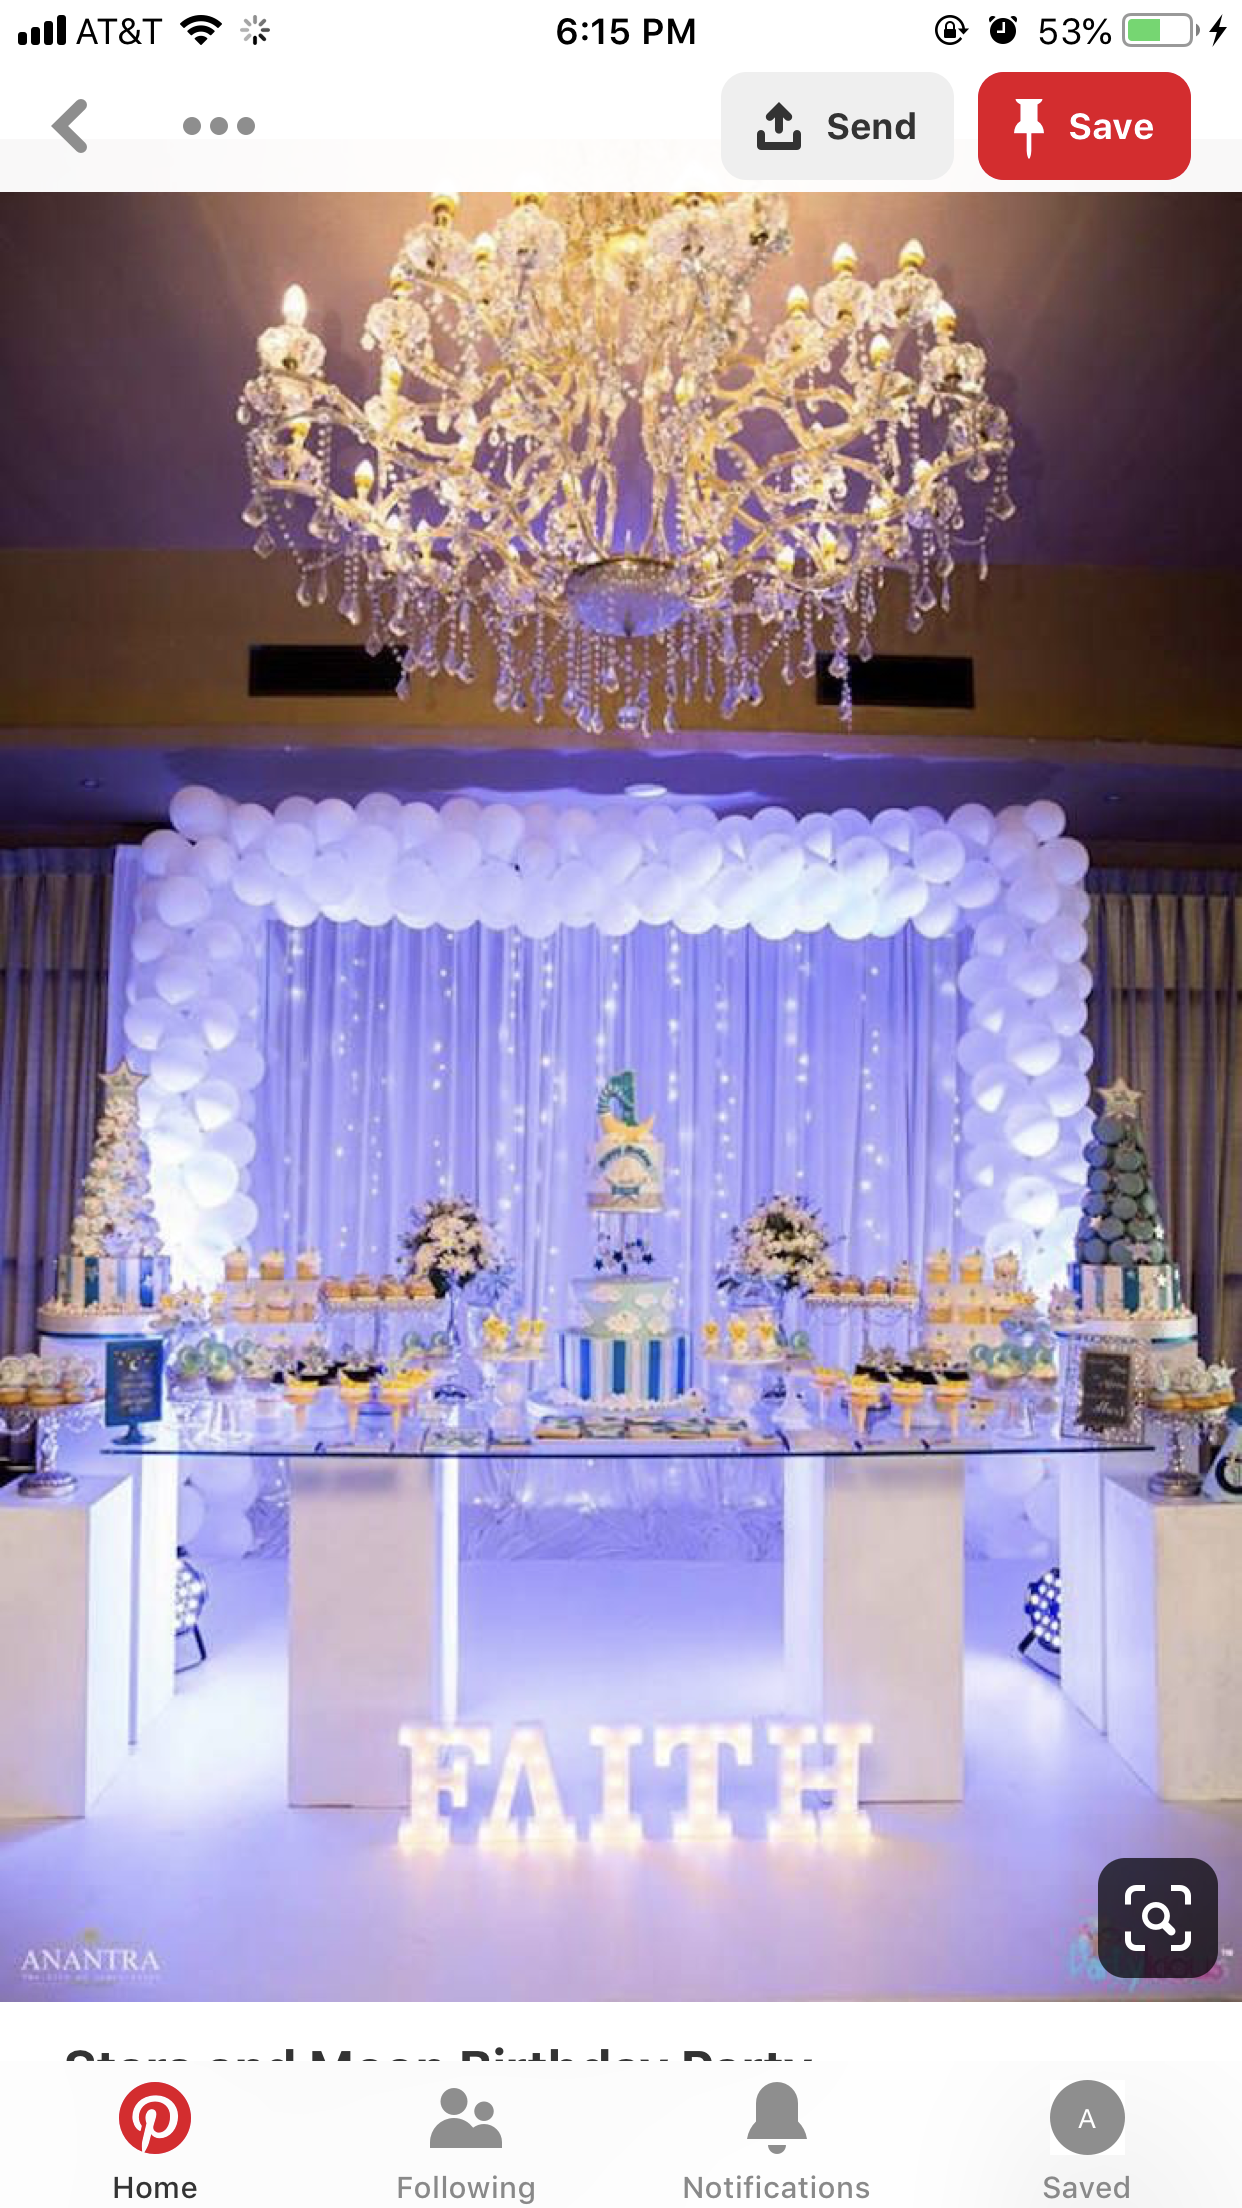 Pin by Anahiciriaco on 15 Sweet 16 party decorations